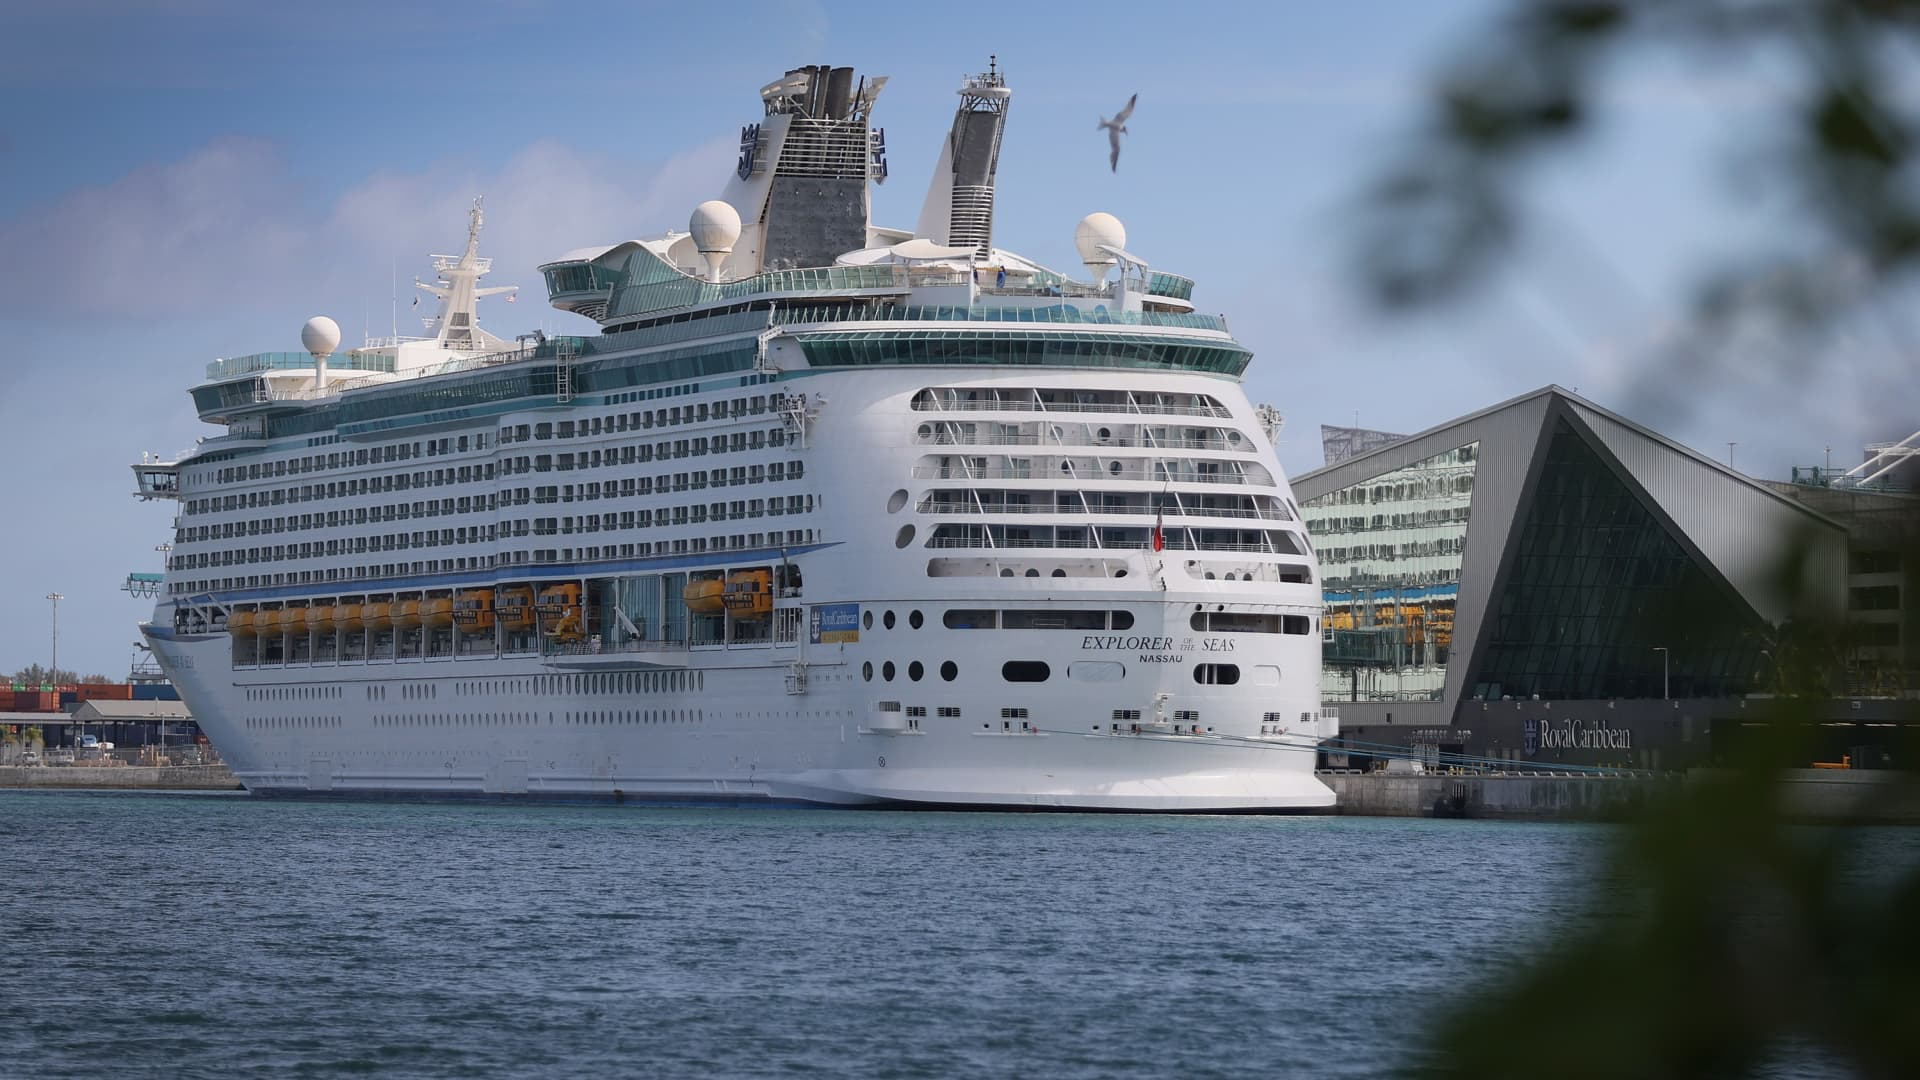 Royal Caribbean's Explorer of the Seas cruise ship is docked at PortMiami on March 02, 2021 in Miami, Florida.